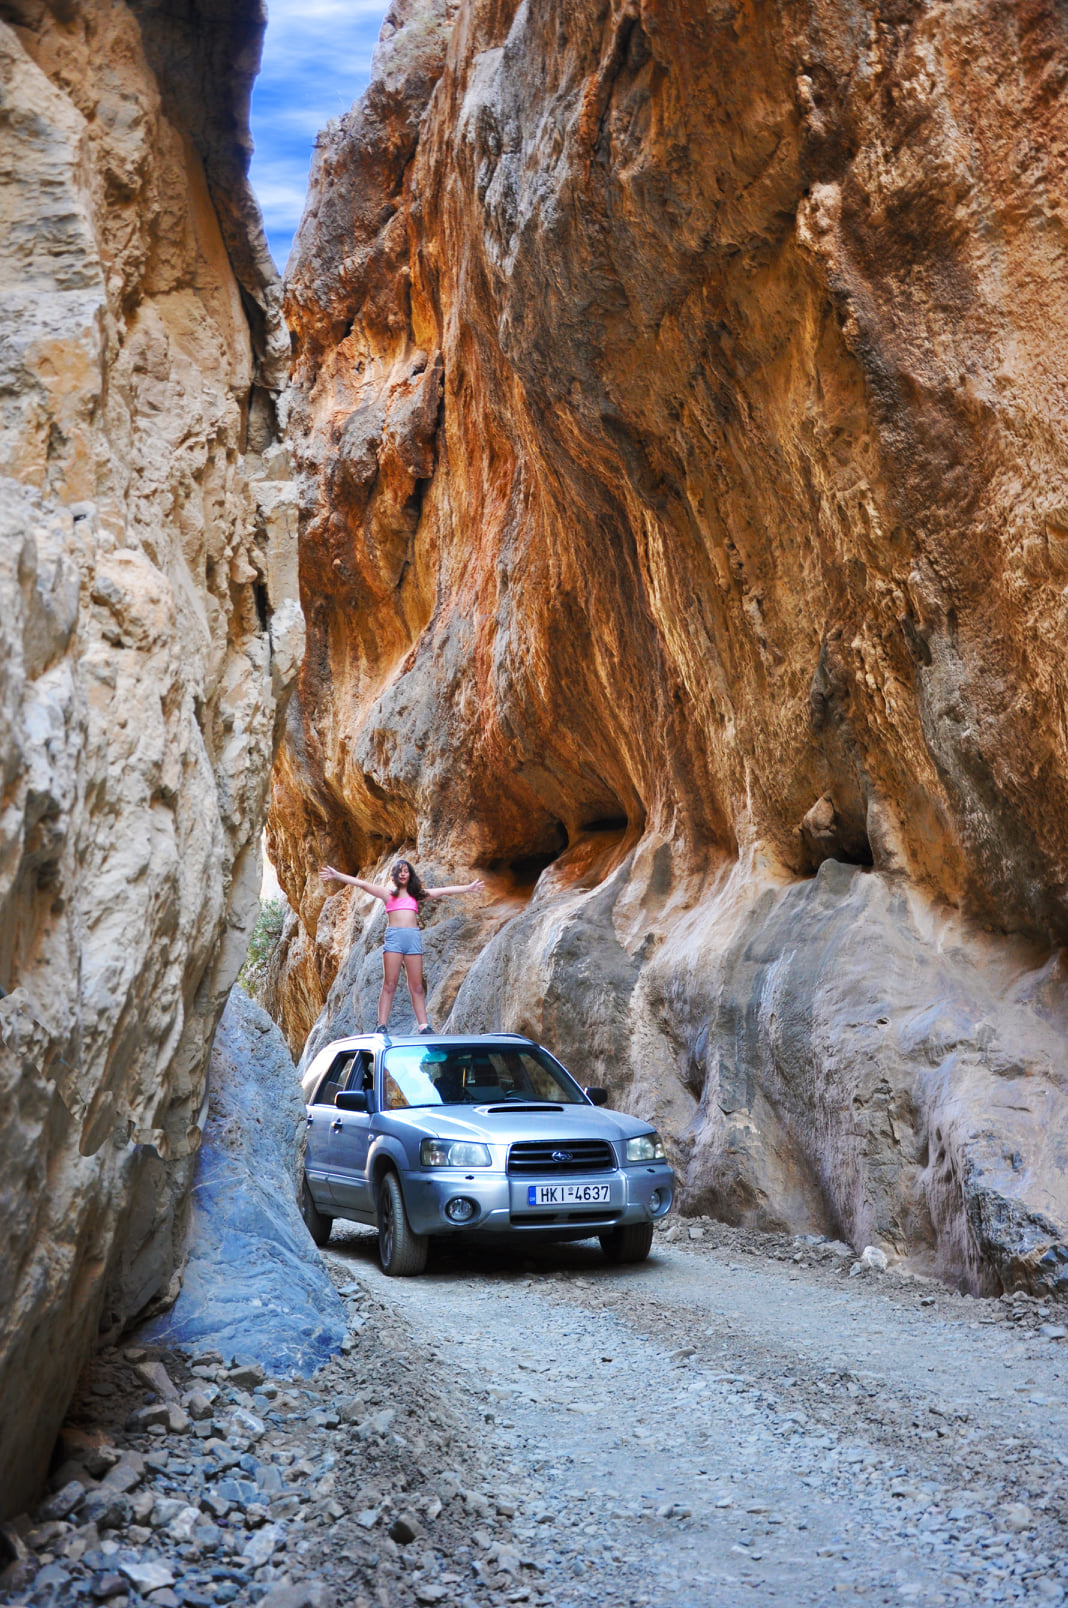 Narrow Gorge of Tripiti